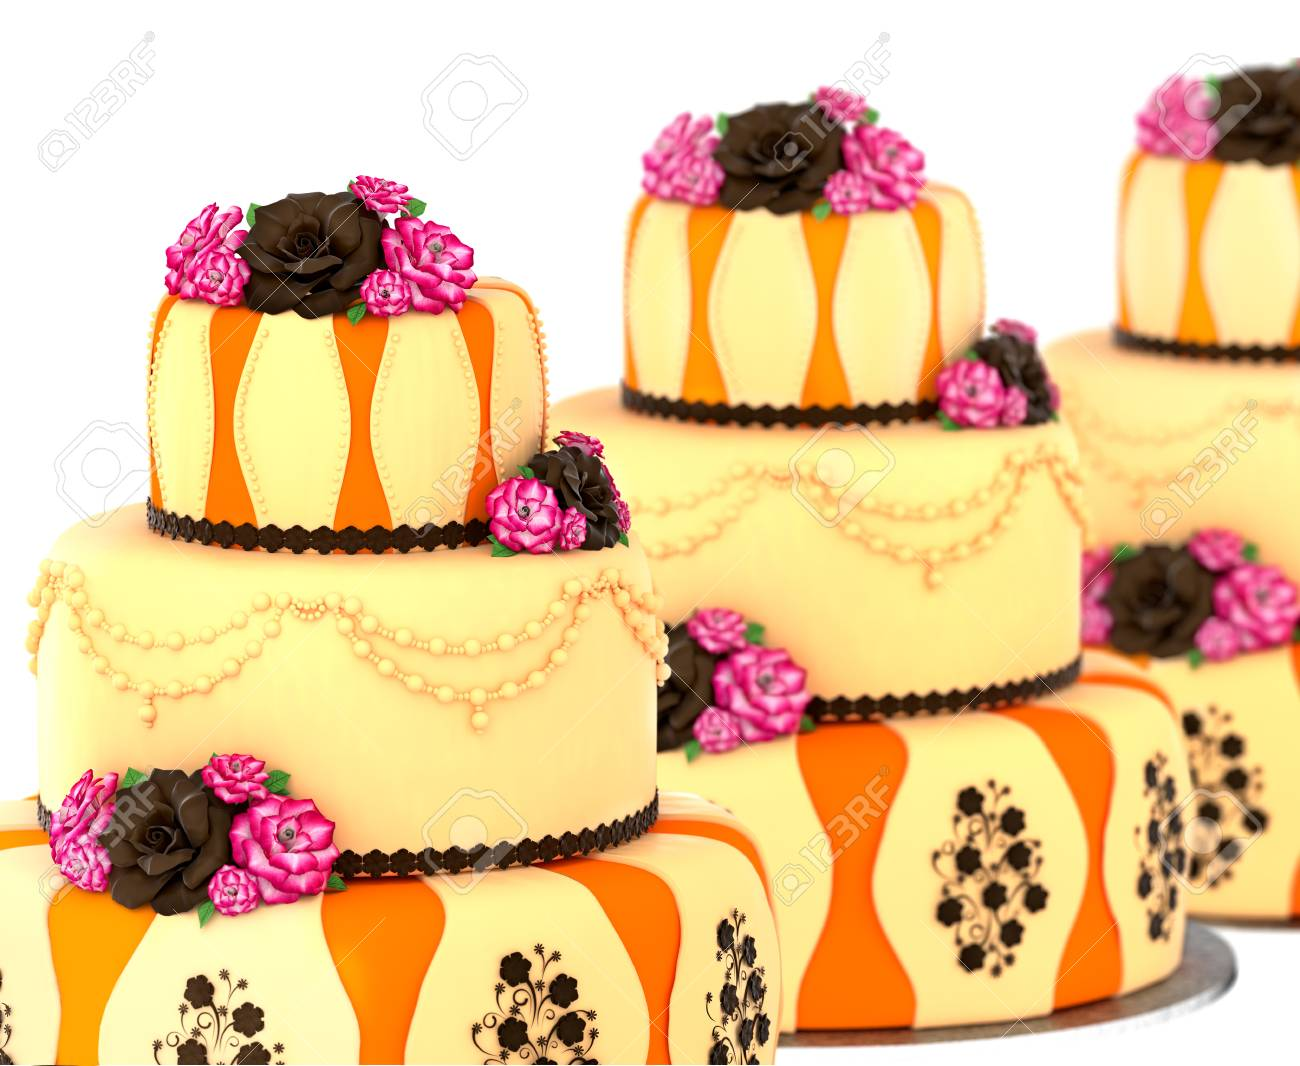 Three Tier Cake With 3 Layer Decorated Chocolate Rose And Flowers